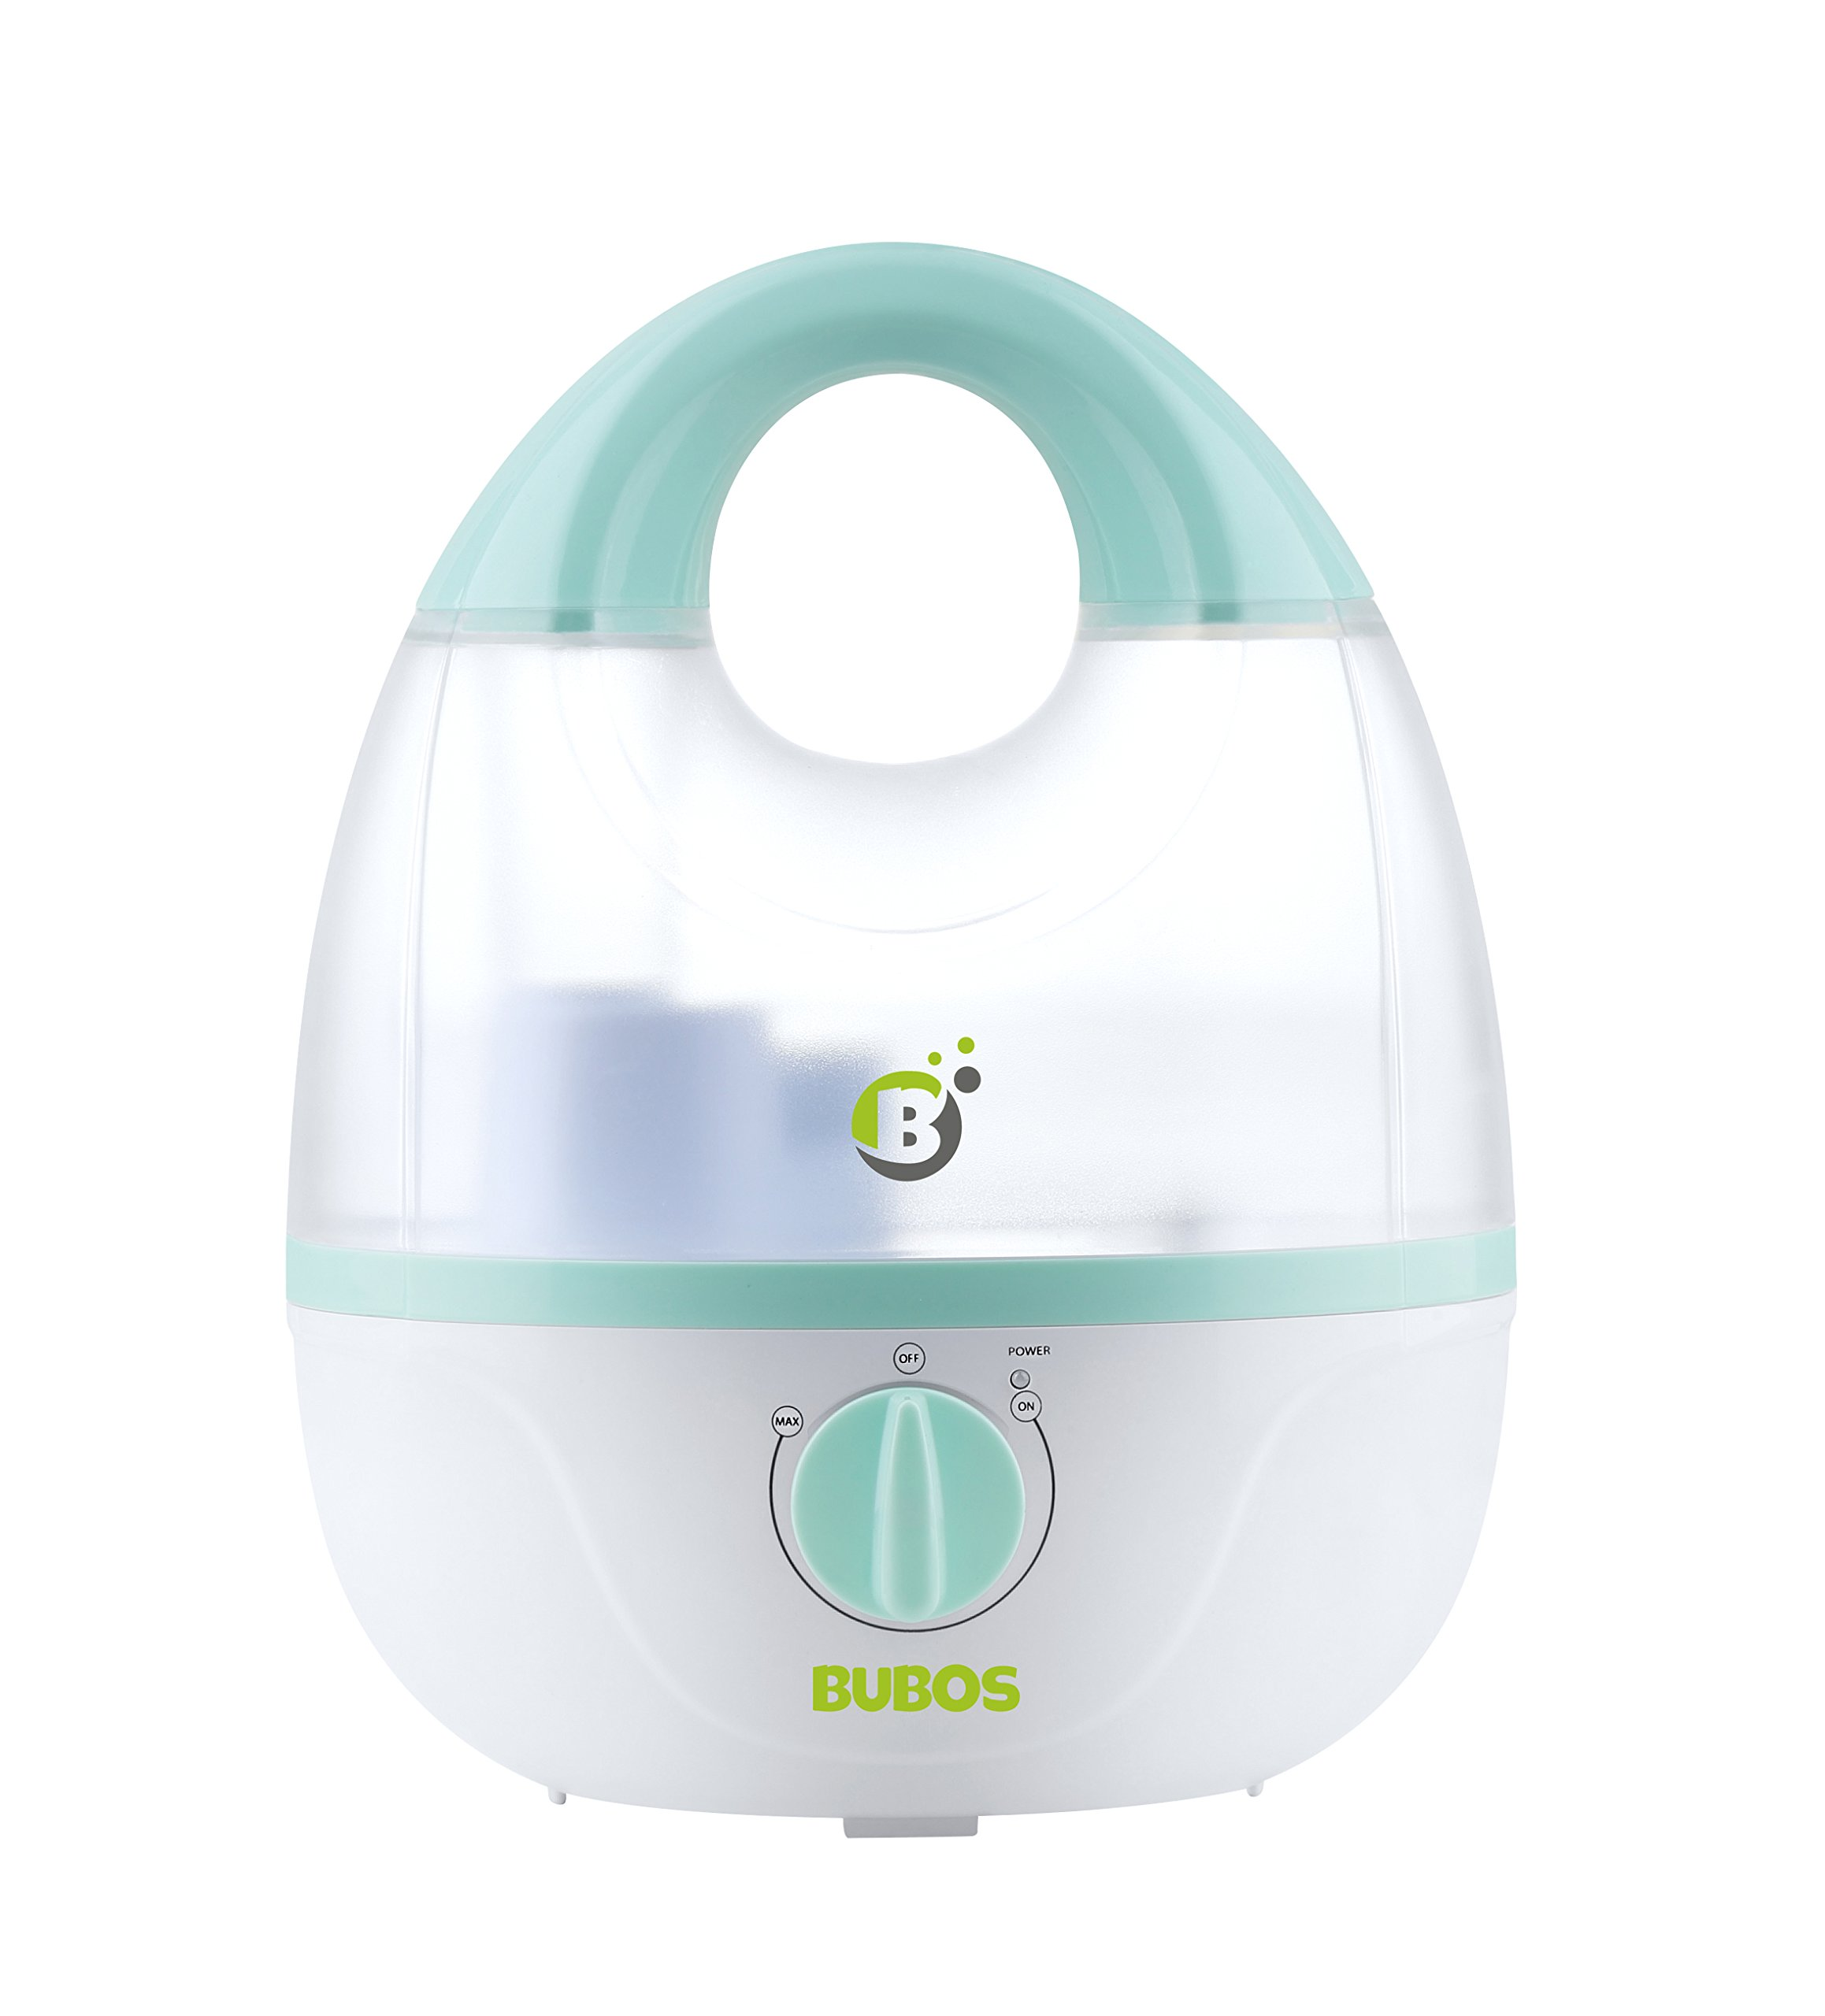 Bubos Ultrasonic Cool Mist Humidifier - Whisper-Quiet Operation, Adjustable Mist Output, 1.8L Capacity Vaporizer for Home Bedroom Baby Room or Office